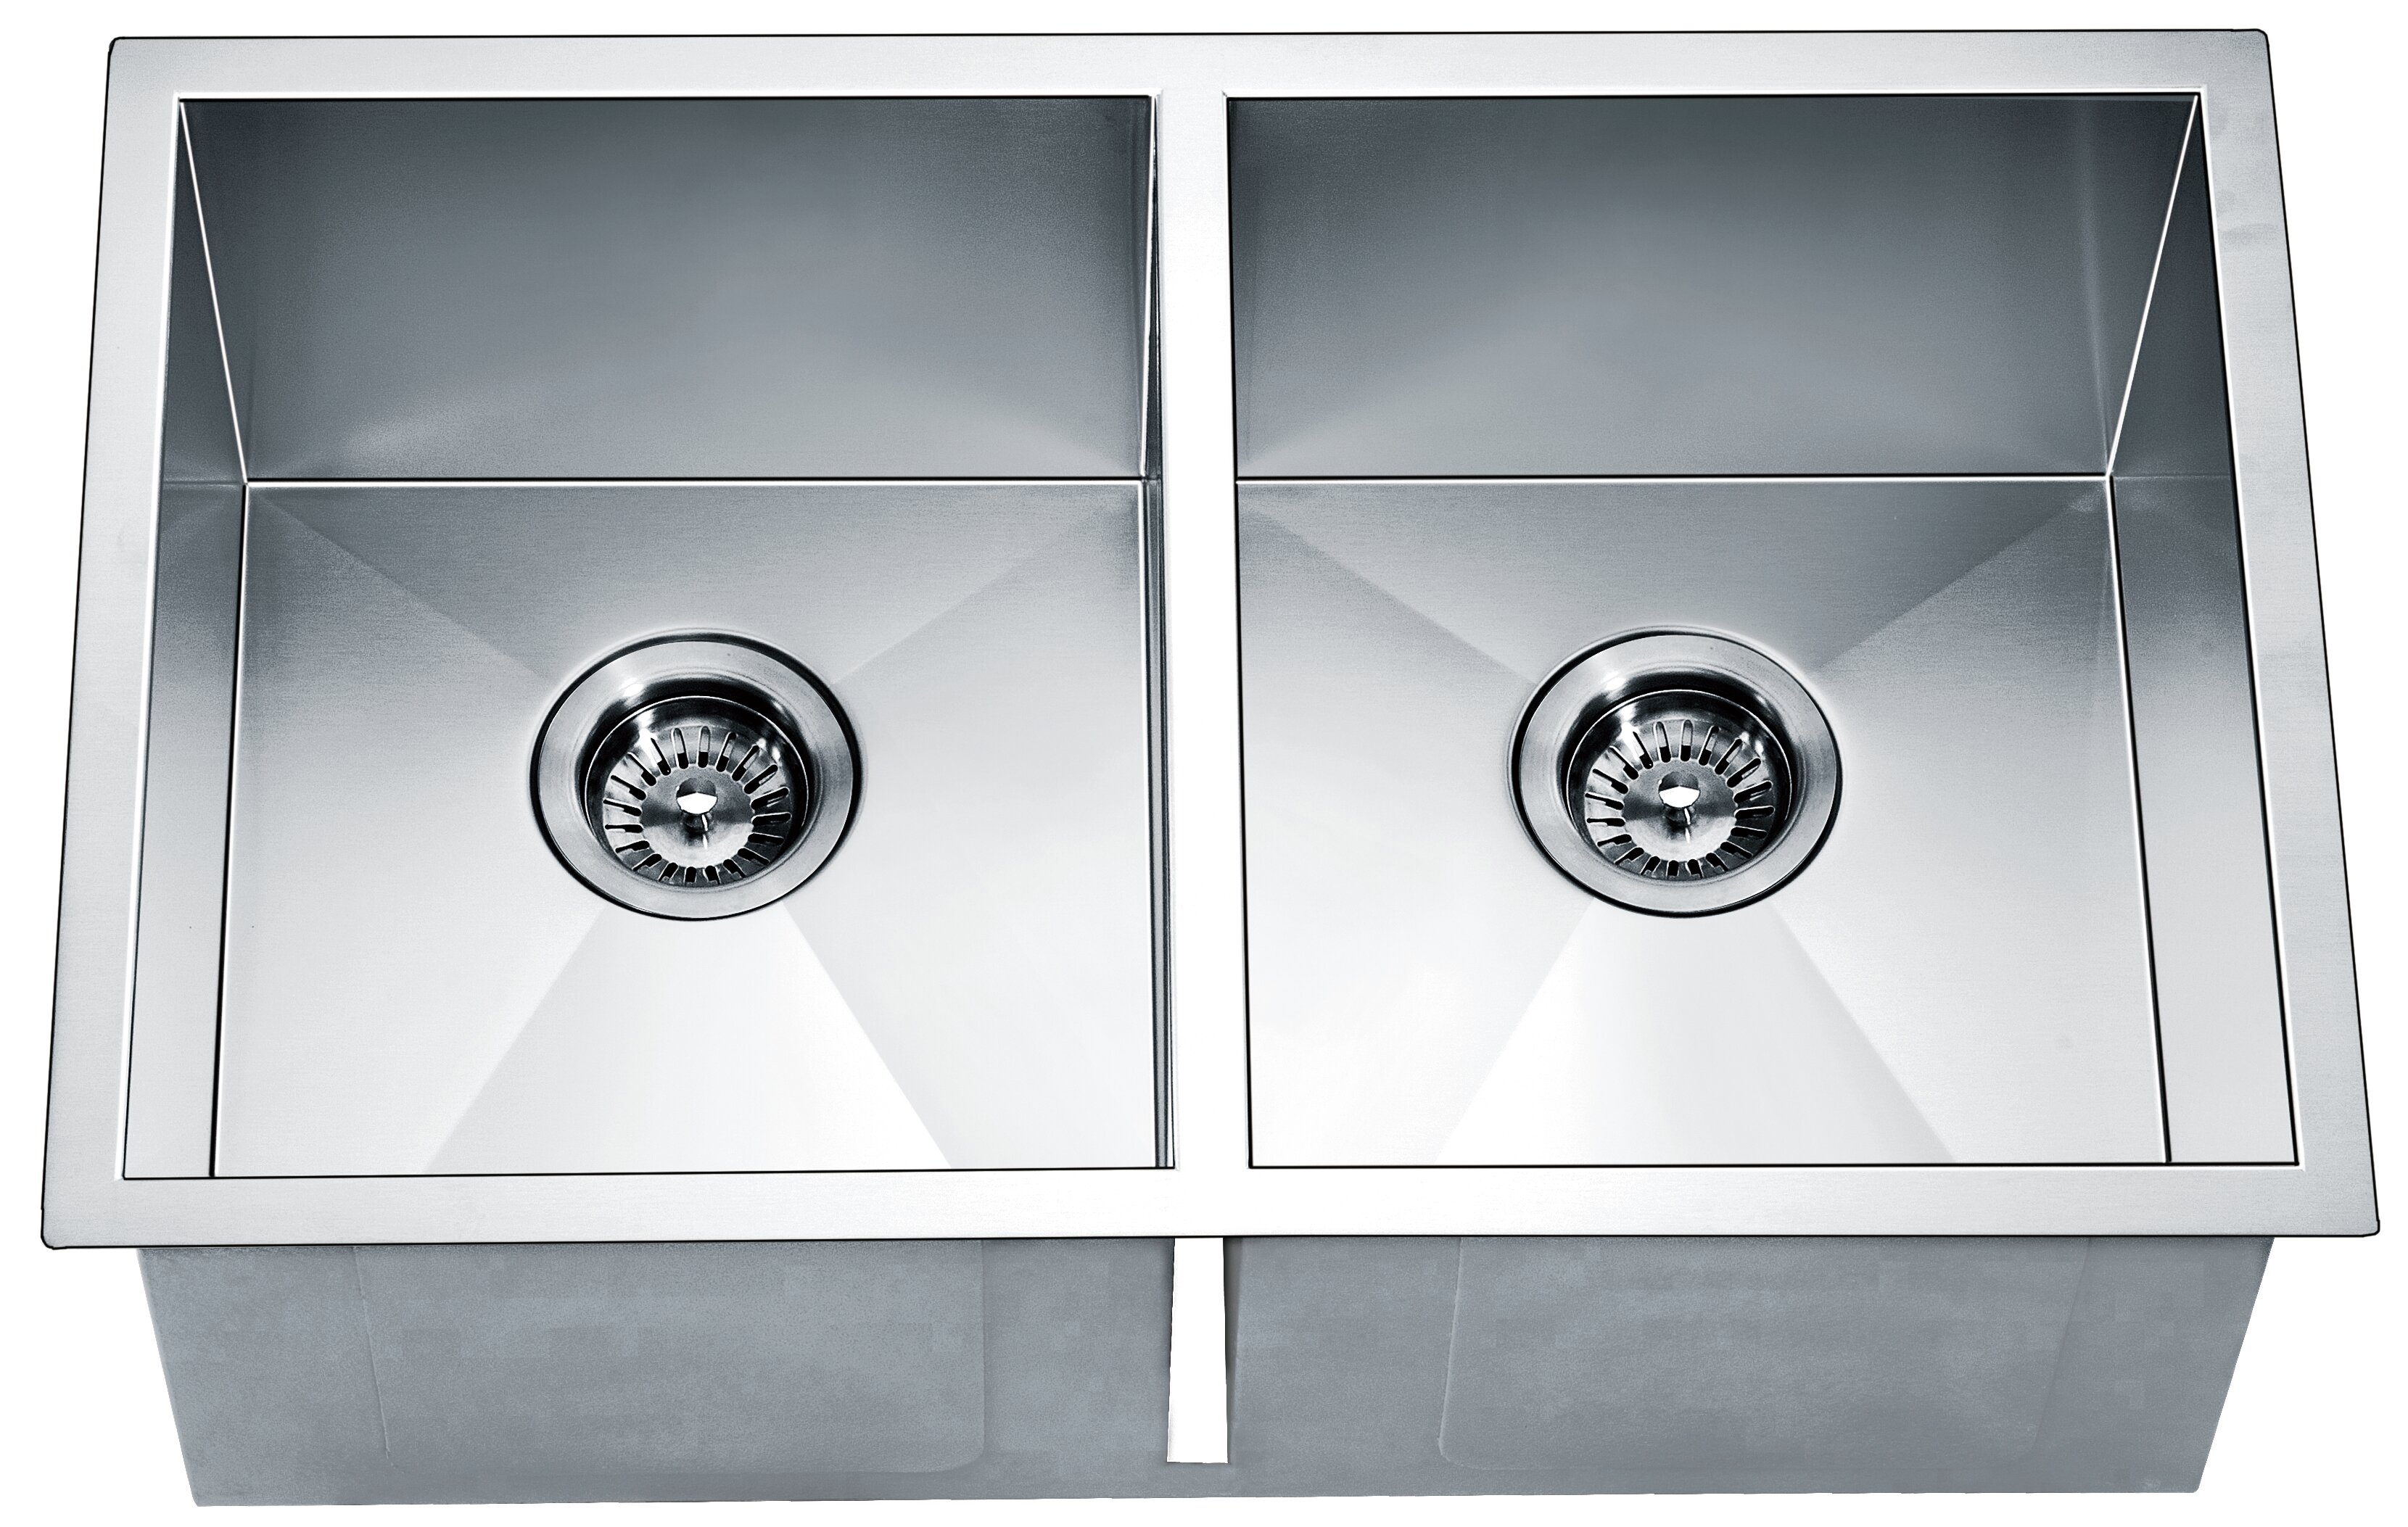 Esq270909 29 L X 18 W Double Basinl Undermount Kitchen Sink